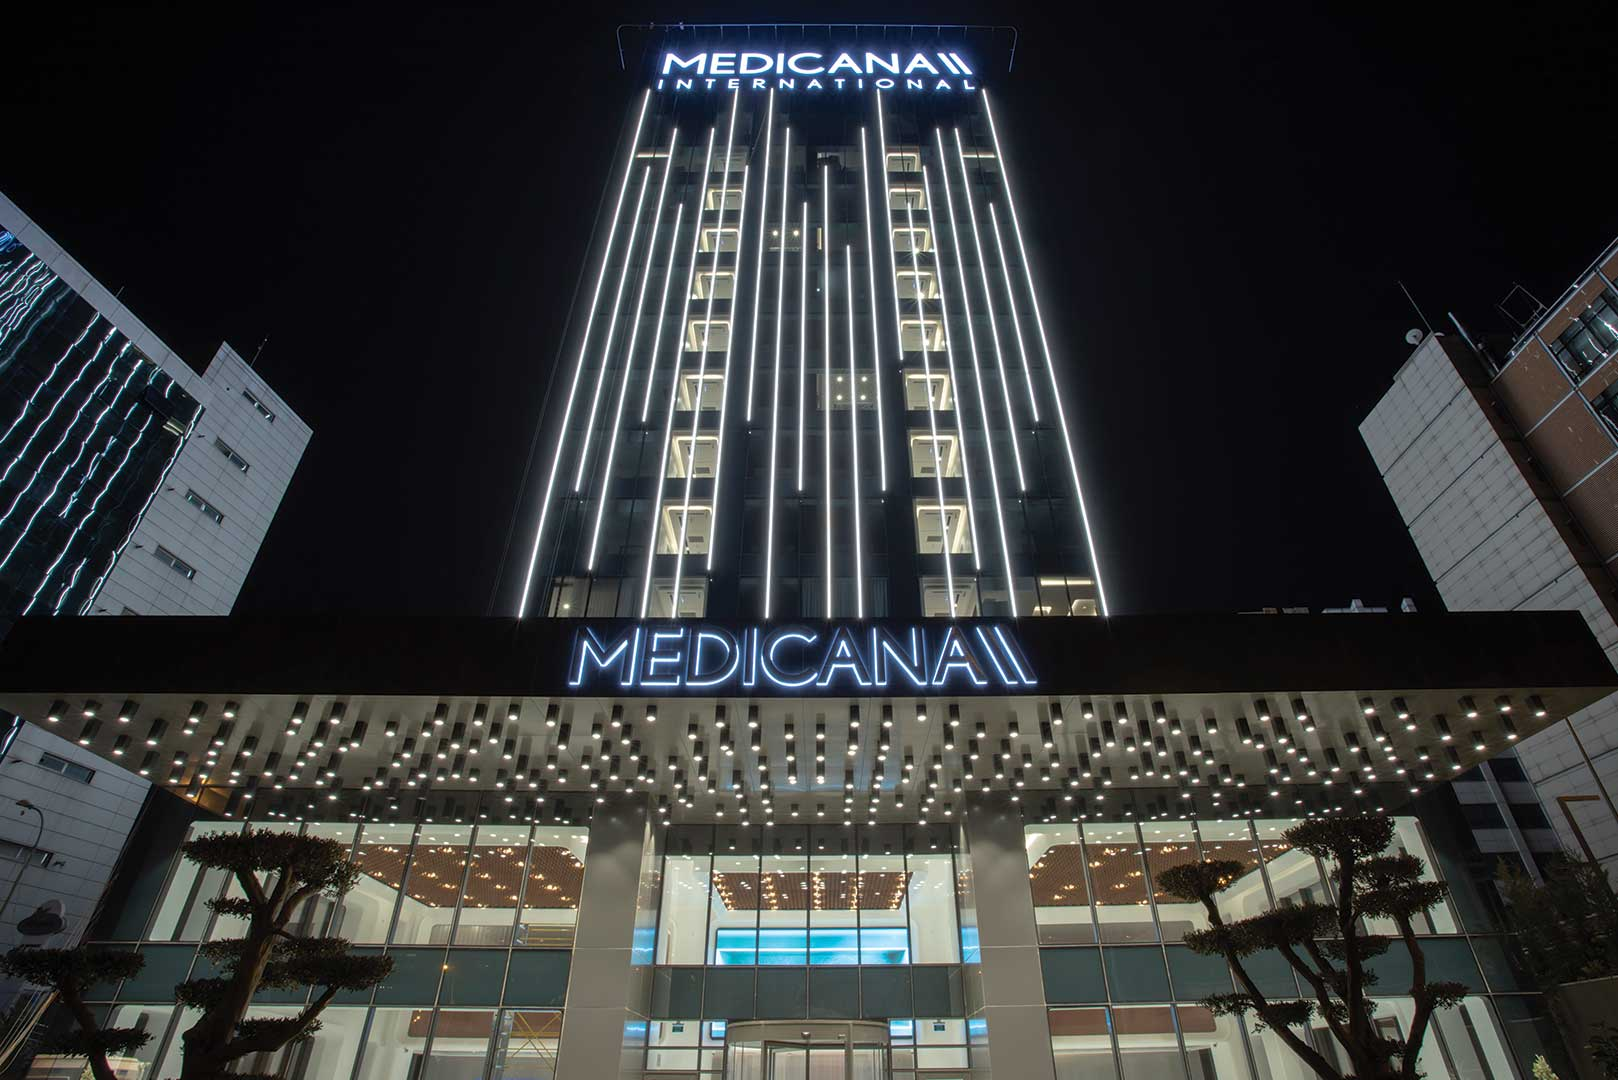 https://www.medicanahealthpoint.com/wp-content/uploads/2021/03/medicana-atasehir-hastanesi.jpg